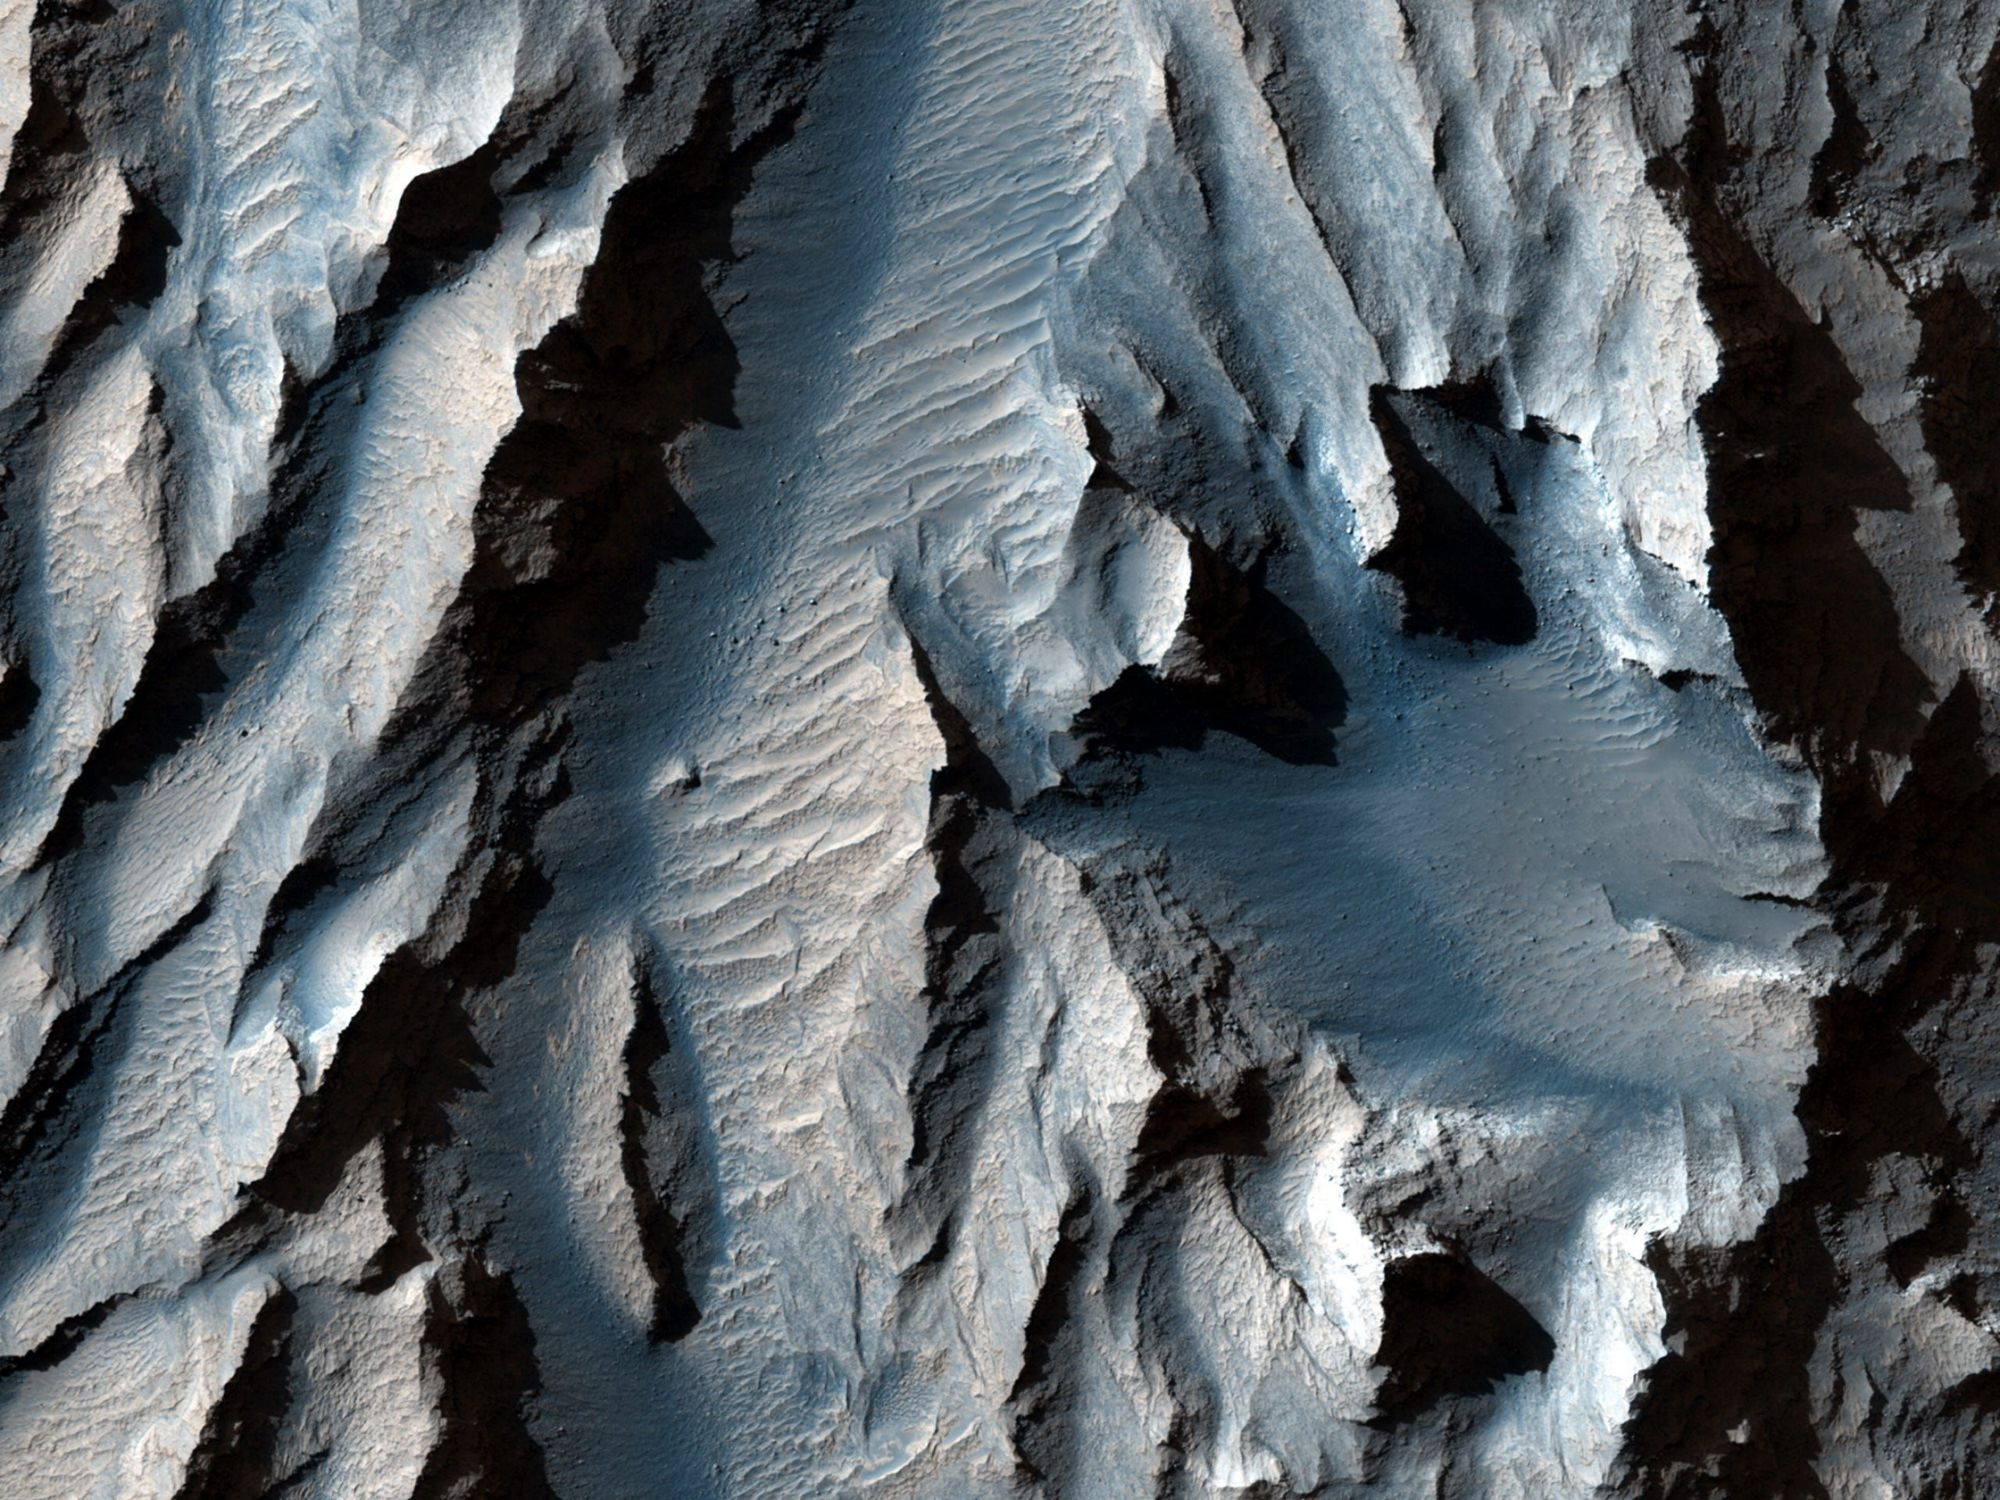 NASA says the new images reveal a huge valley on the surface of Mars, the largest in the solar system